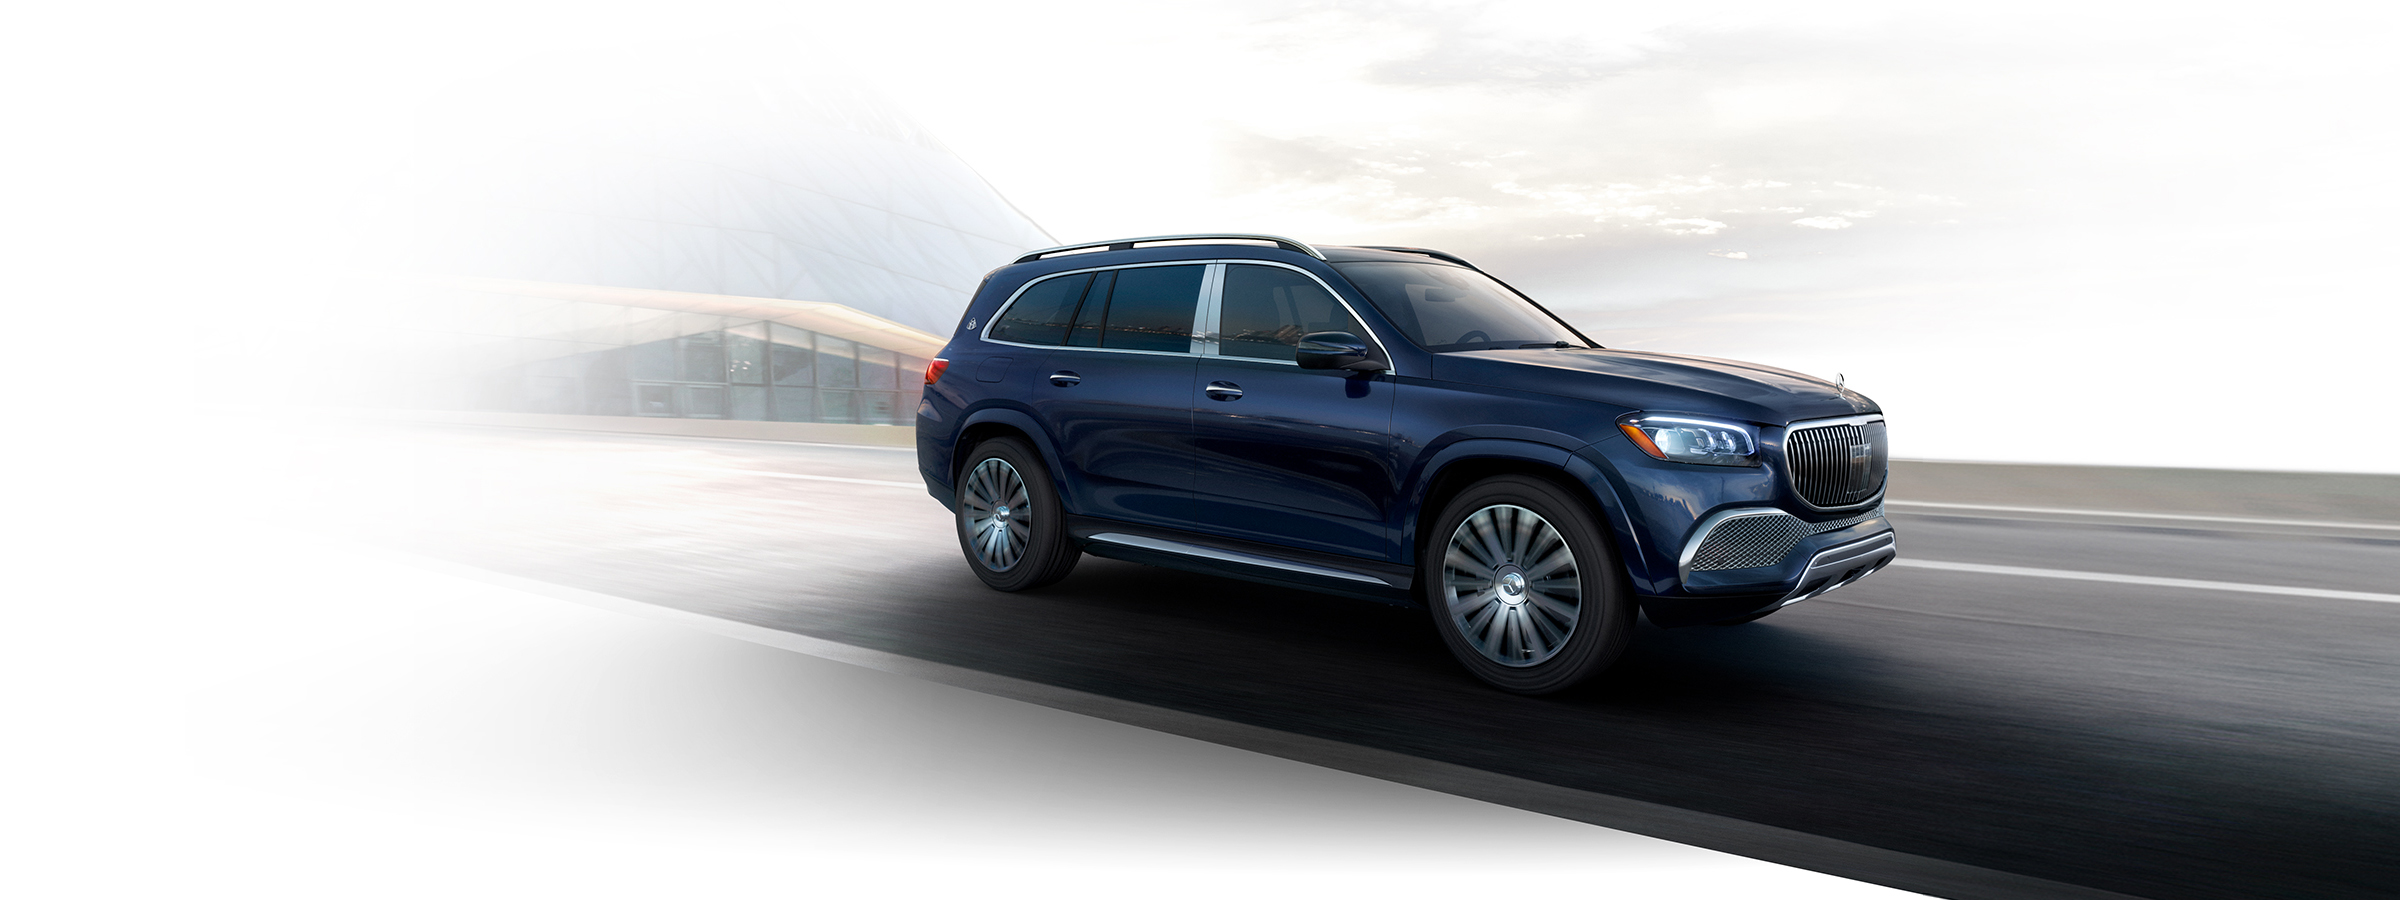 Mercedes Maybach Gls Large Luxury Suv Mercedes Benz Usa